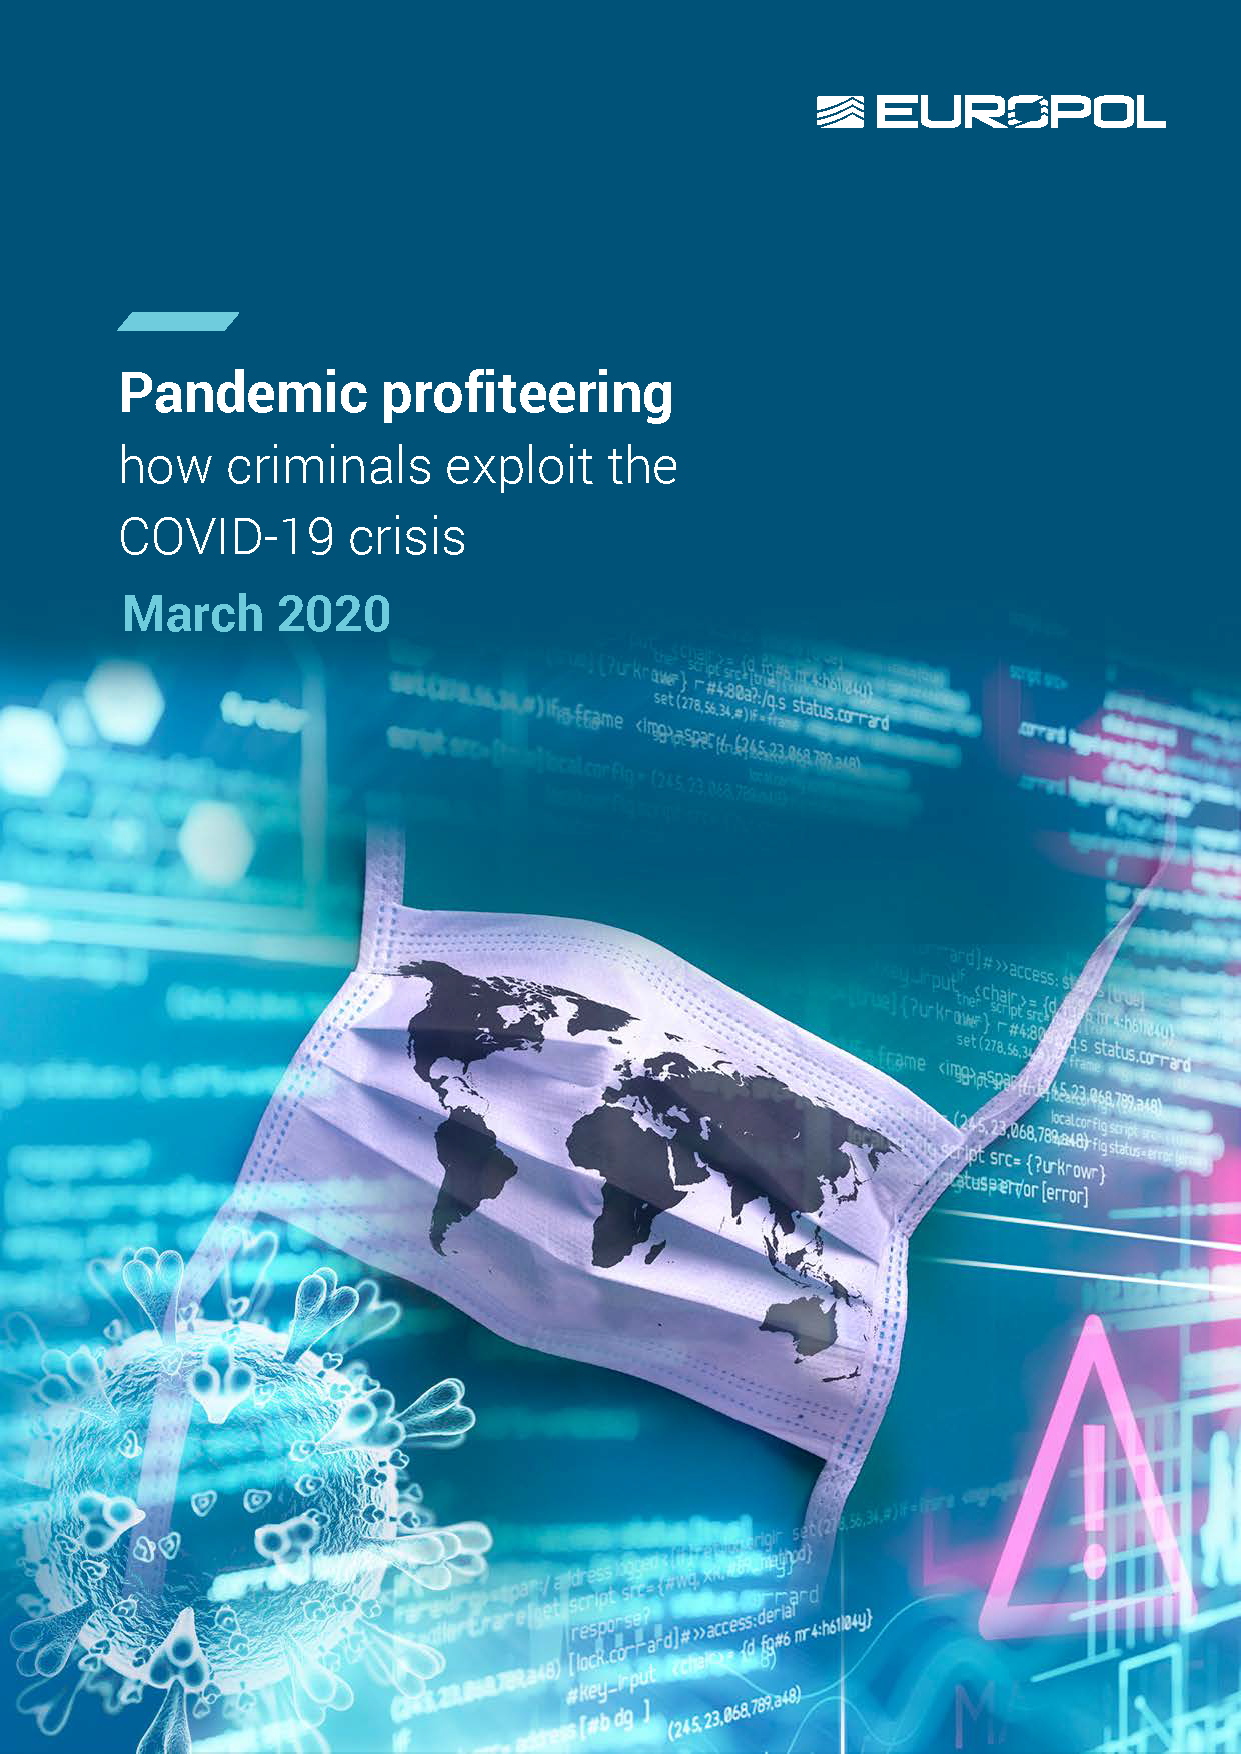 Europol: Pandemic Profiteering How Criminals Exploit The COVID-19 Crisis